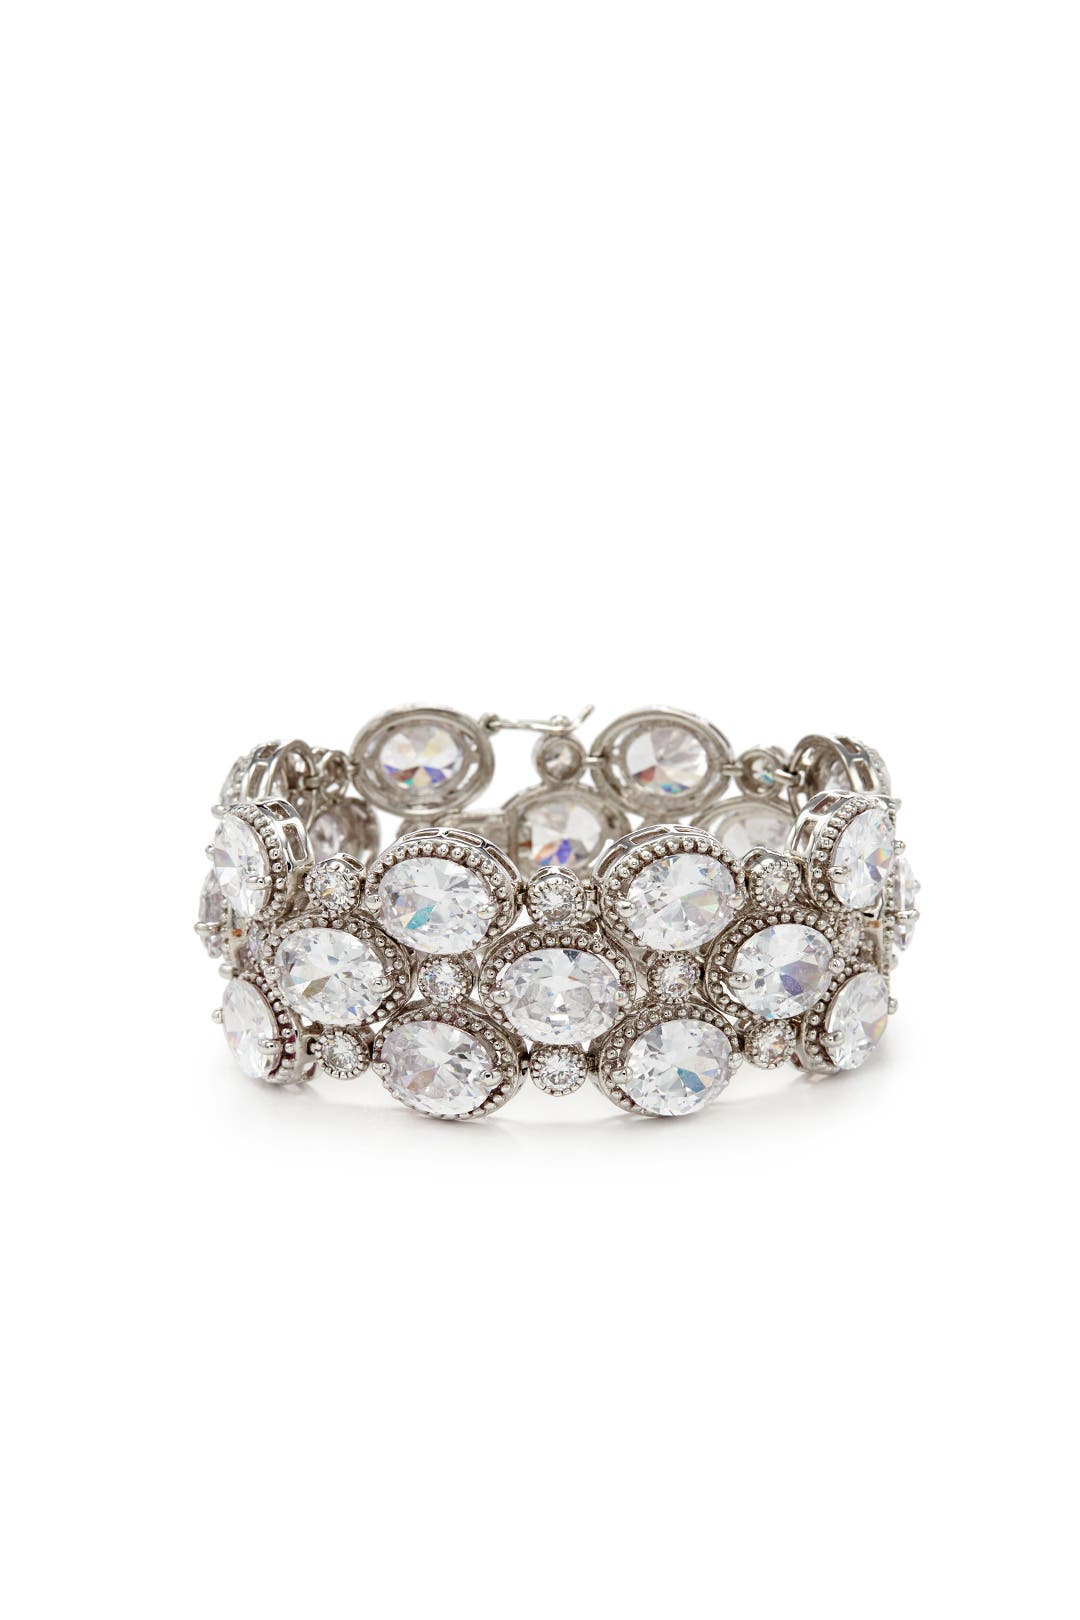 Lady Diana Bracelet by Kenneth Jay Lane